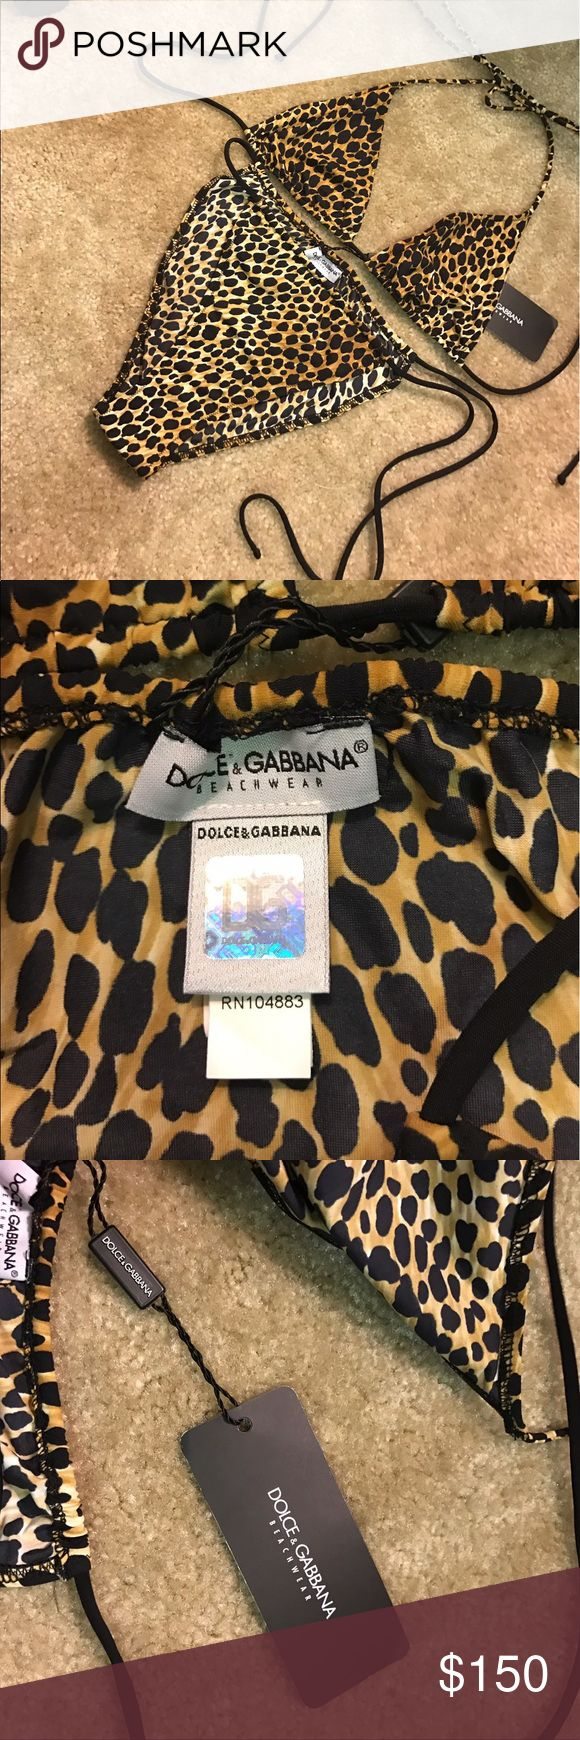 Dolce and gabbana swimsuit Leopard Dolce and gabbana swimsuit Leopard brand new with tags size large but runs small European final sale NO TRADES NO PAYPAL NO LOWBALLING Dolce & Gabbana Swim Bikinis